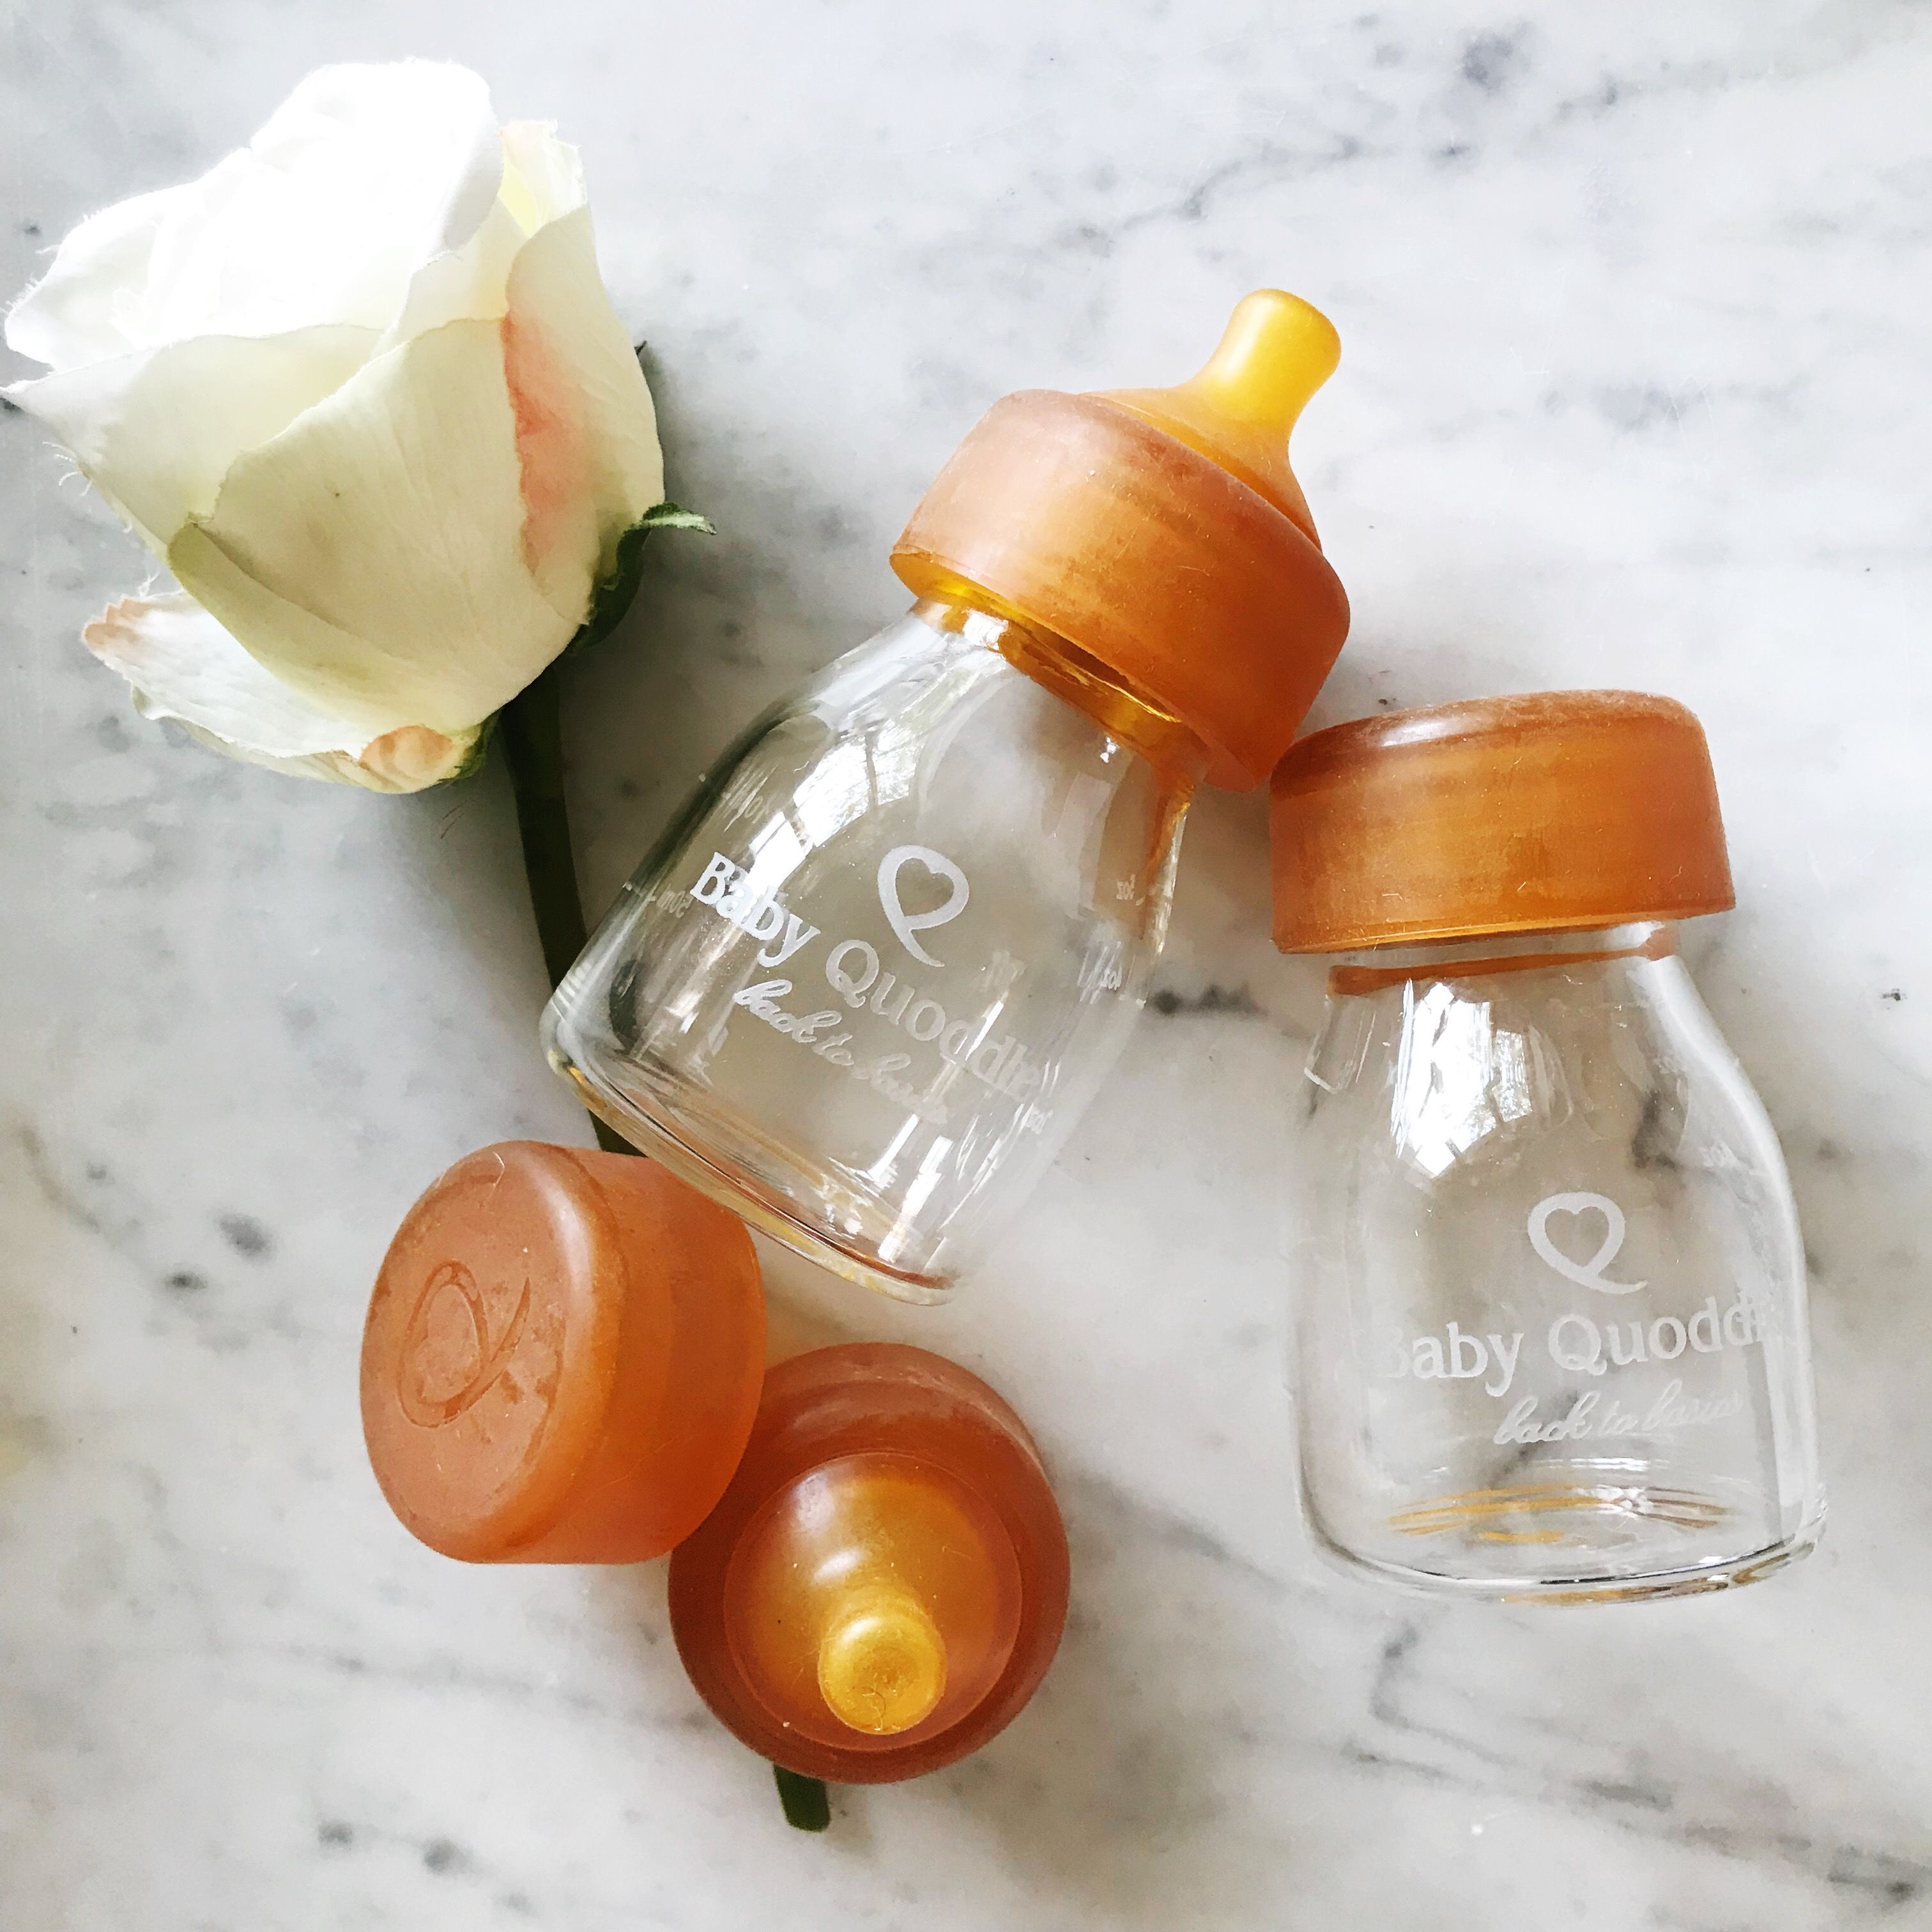 Baby Quoddle Plastic Free Glass Baby Bottle Glass Baby Bottles